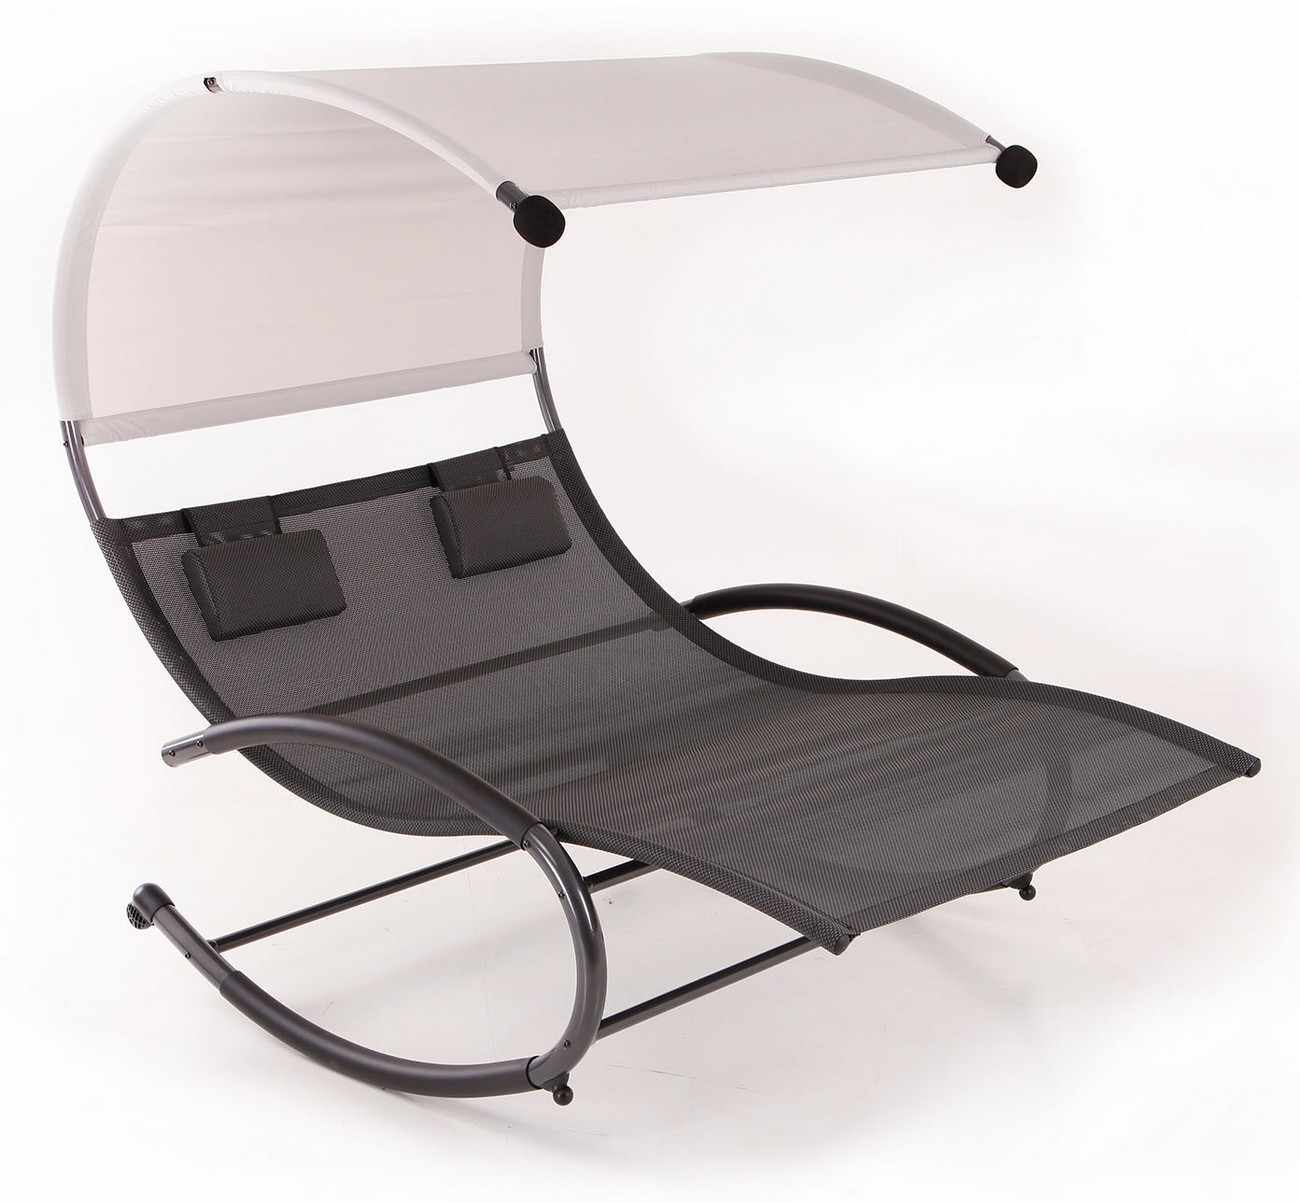 Belleze Double Chaise Rocker Patio Furniture Seat Chair Canopy Pool Swing  Steel Outdoor   Walmart.com